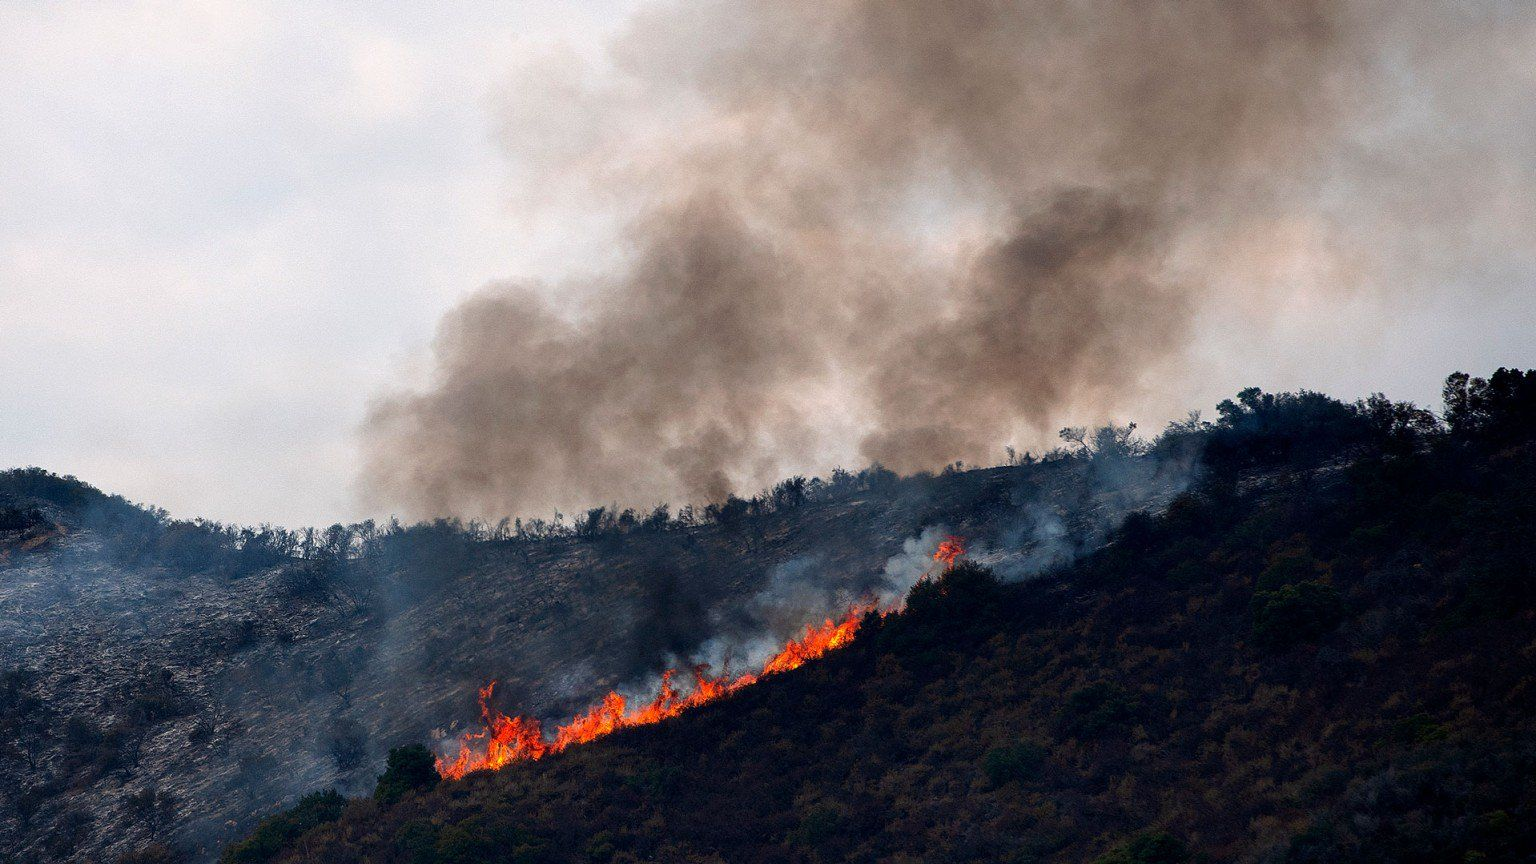 A Gel That Makes Trees Fire Resistant Could Help Prevent Wildfires